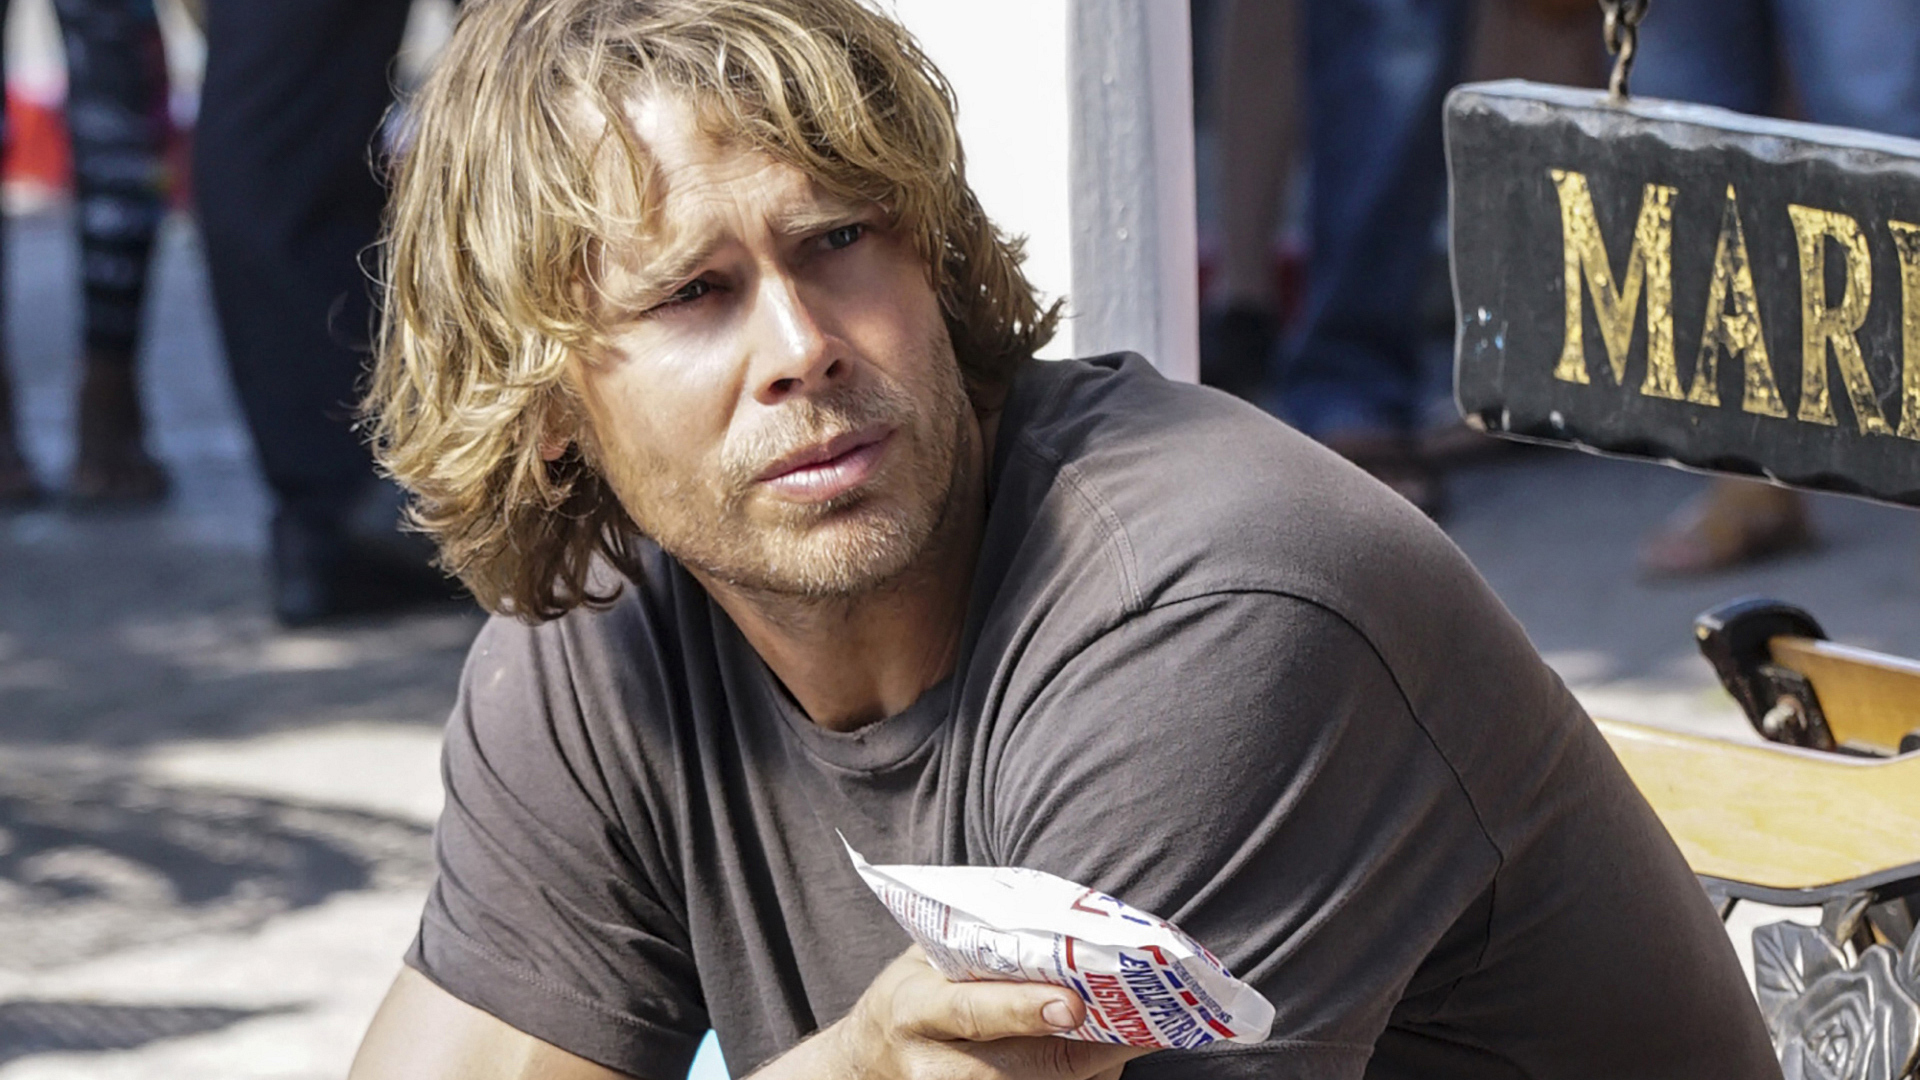 Deeks after going undercover.